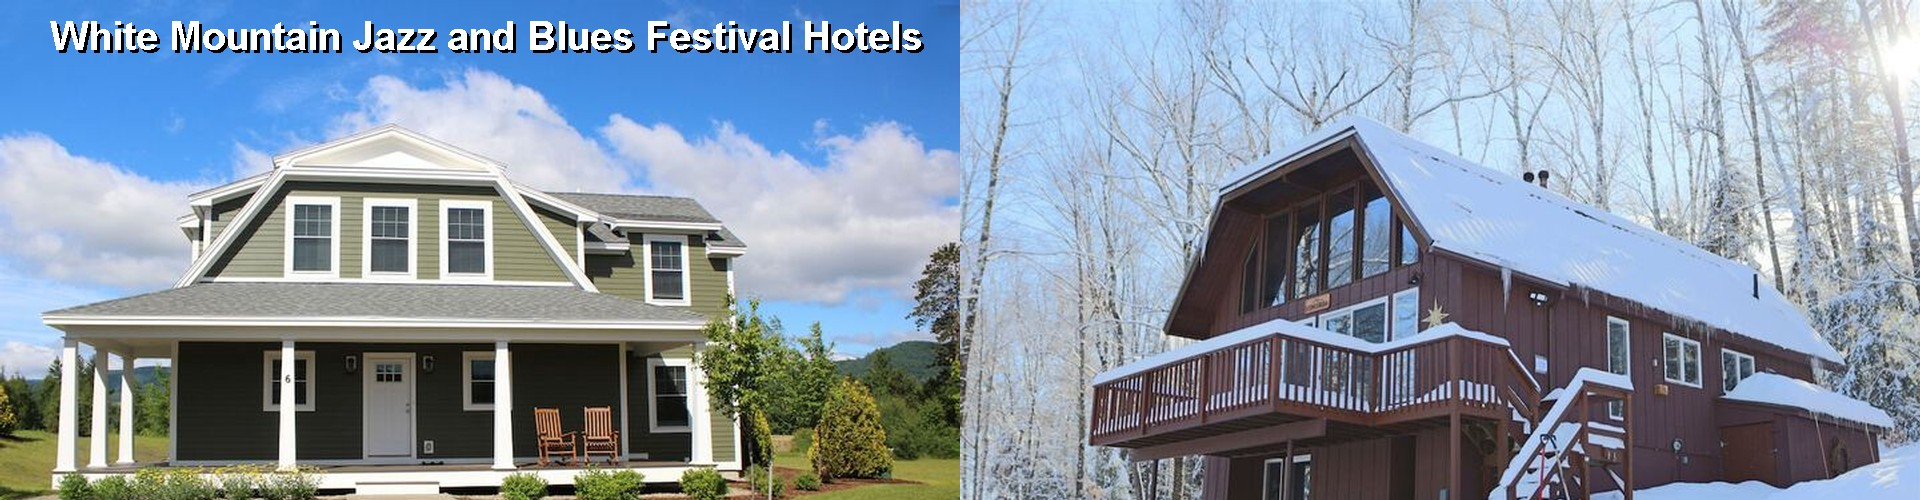 5 Best Hotels near White Mountain Jazz and Blues Festival